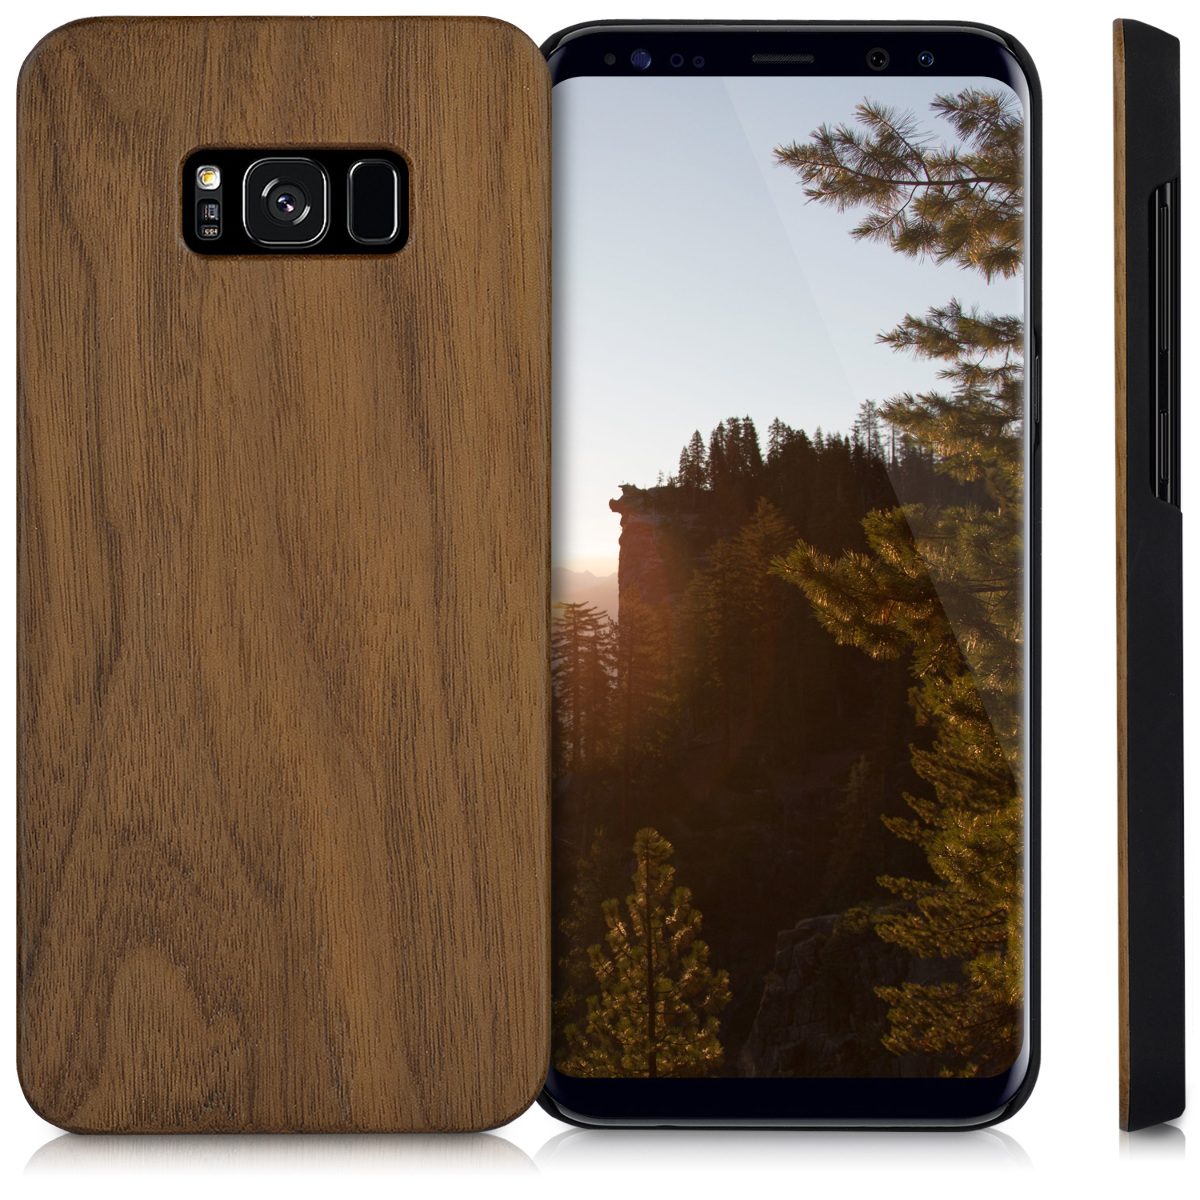 holz case f r samsung galaxy s8 plus walnussholz dunkelbraun h lle handy cover ebay. Black Bedroom Furniture Sets. Home Design Ideas